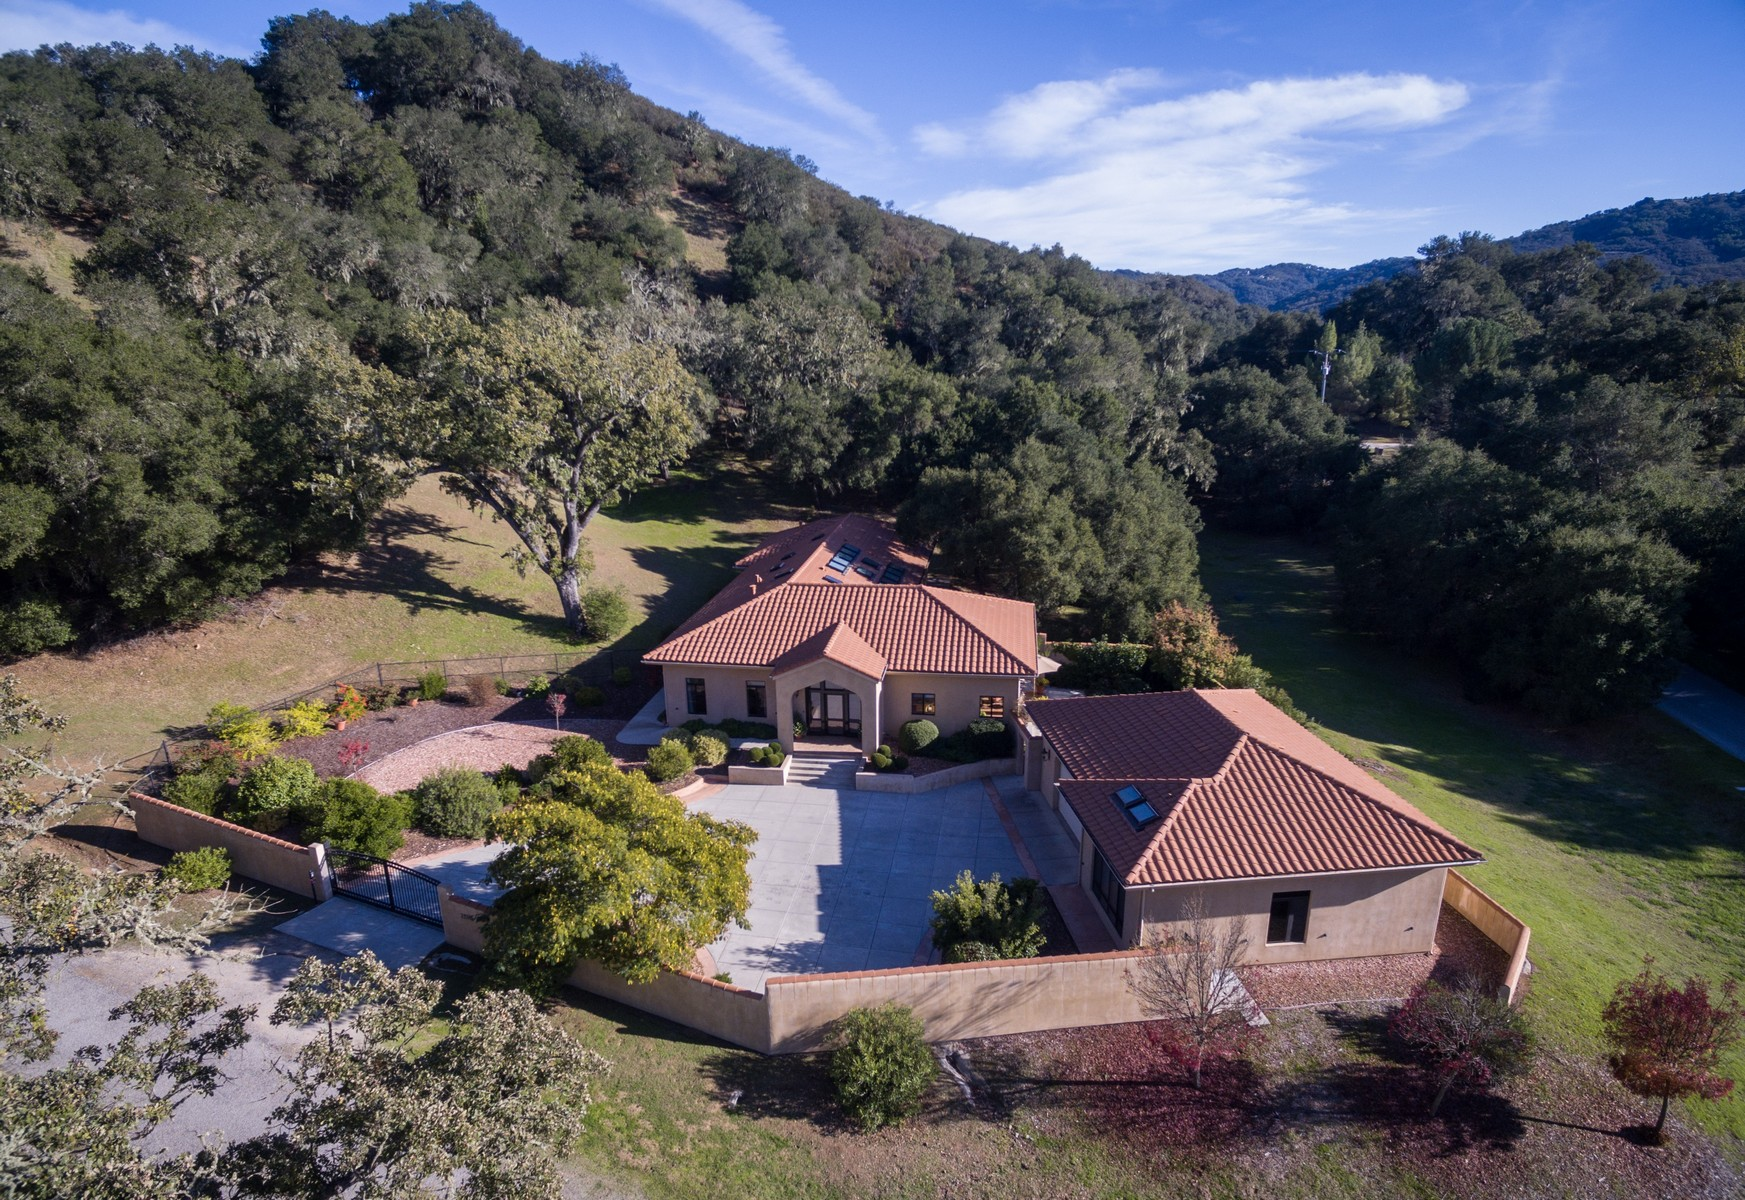 Single Family Home for Sale at Privately Gated Mediterranean Style Estate 7205 Nudoso Rd Atascadero, California, 93422 United States